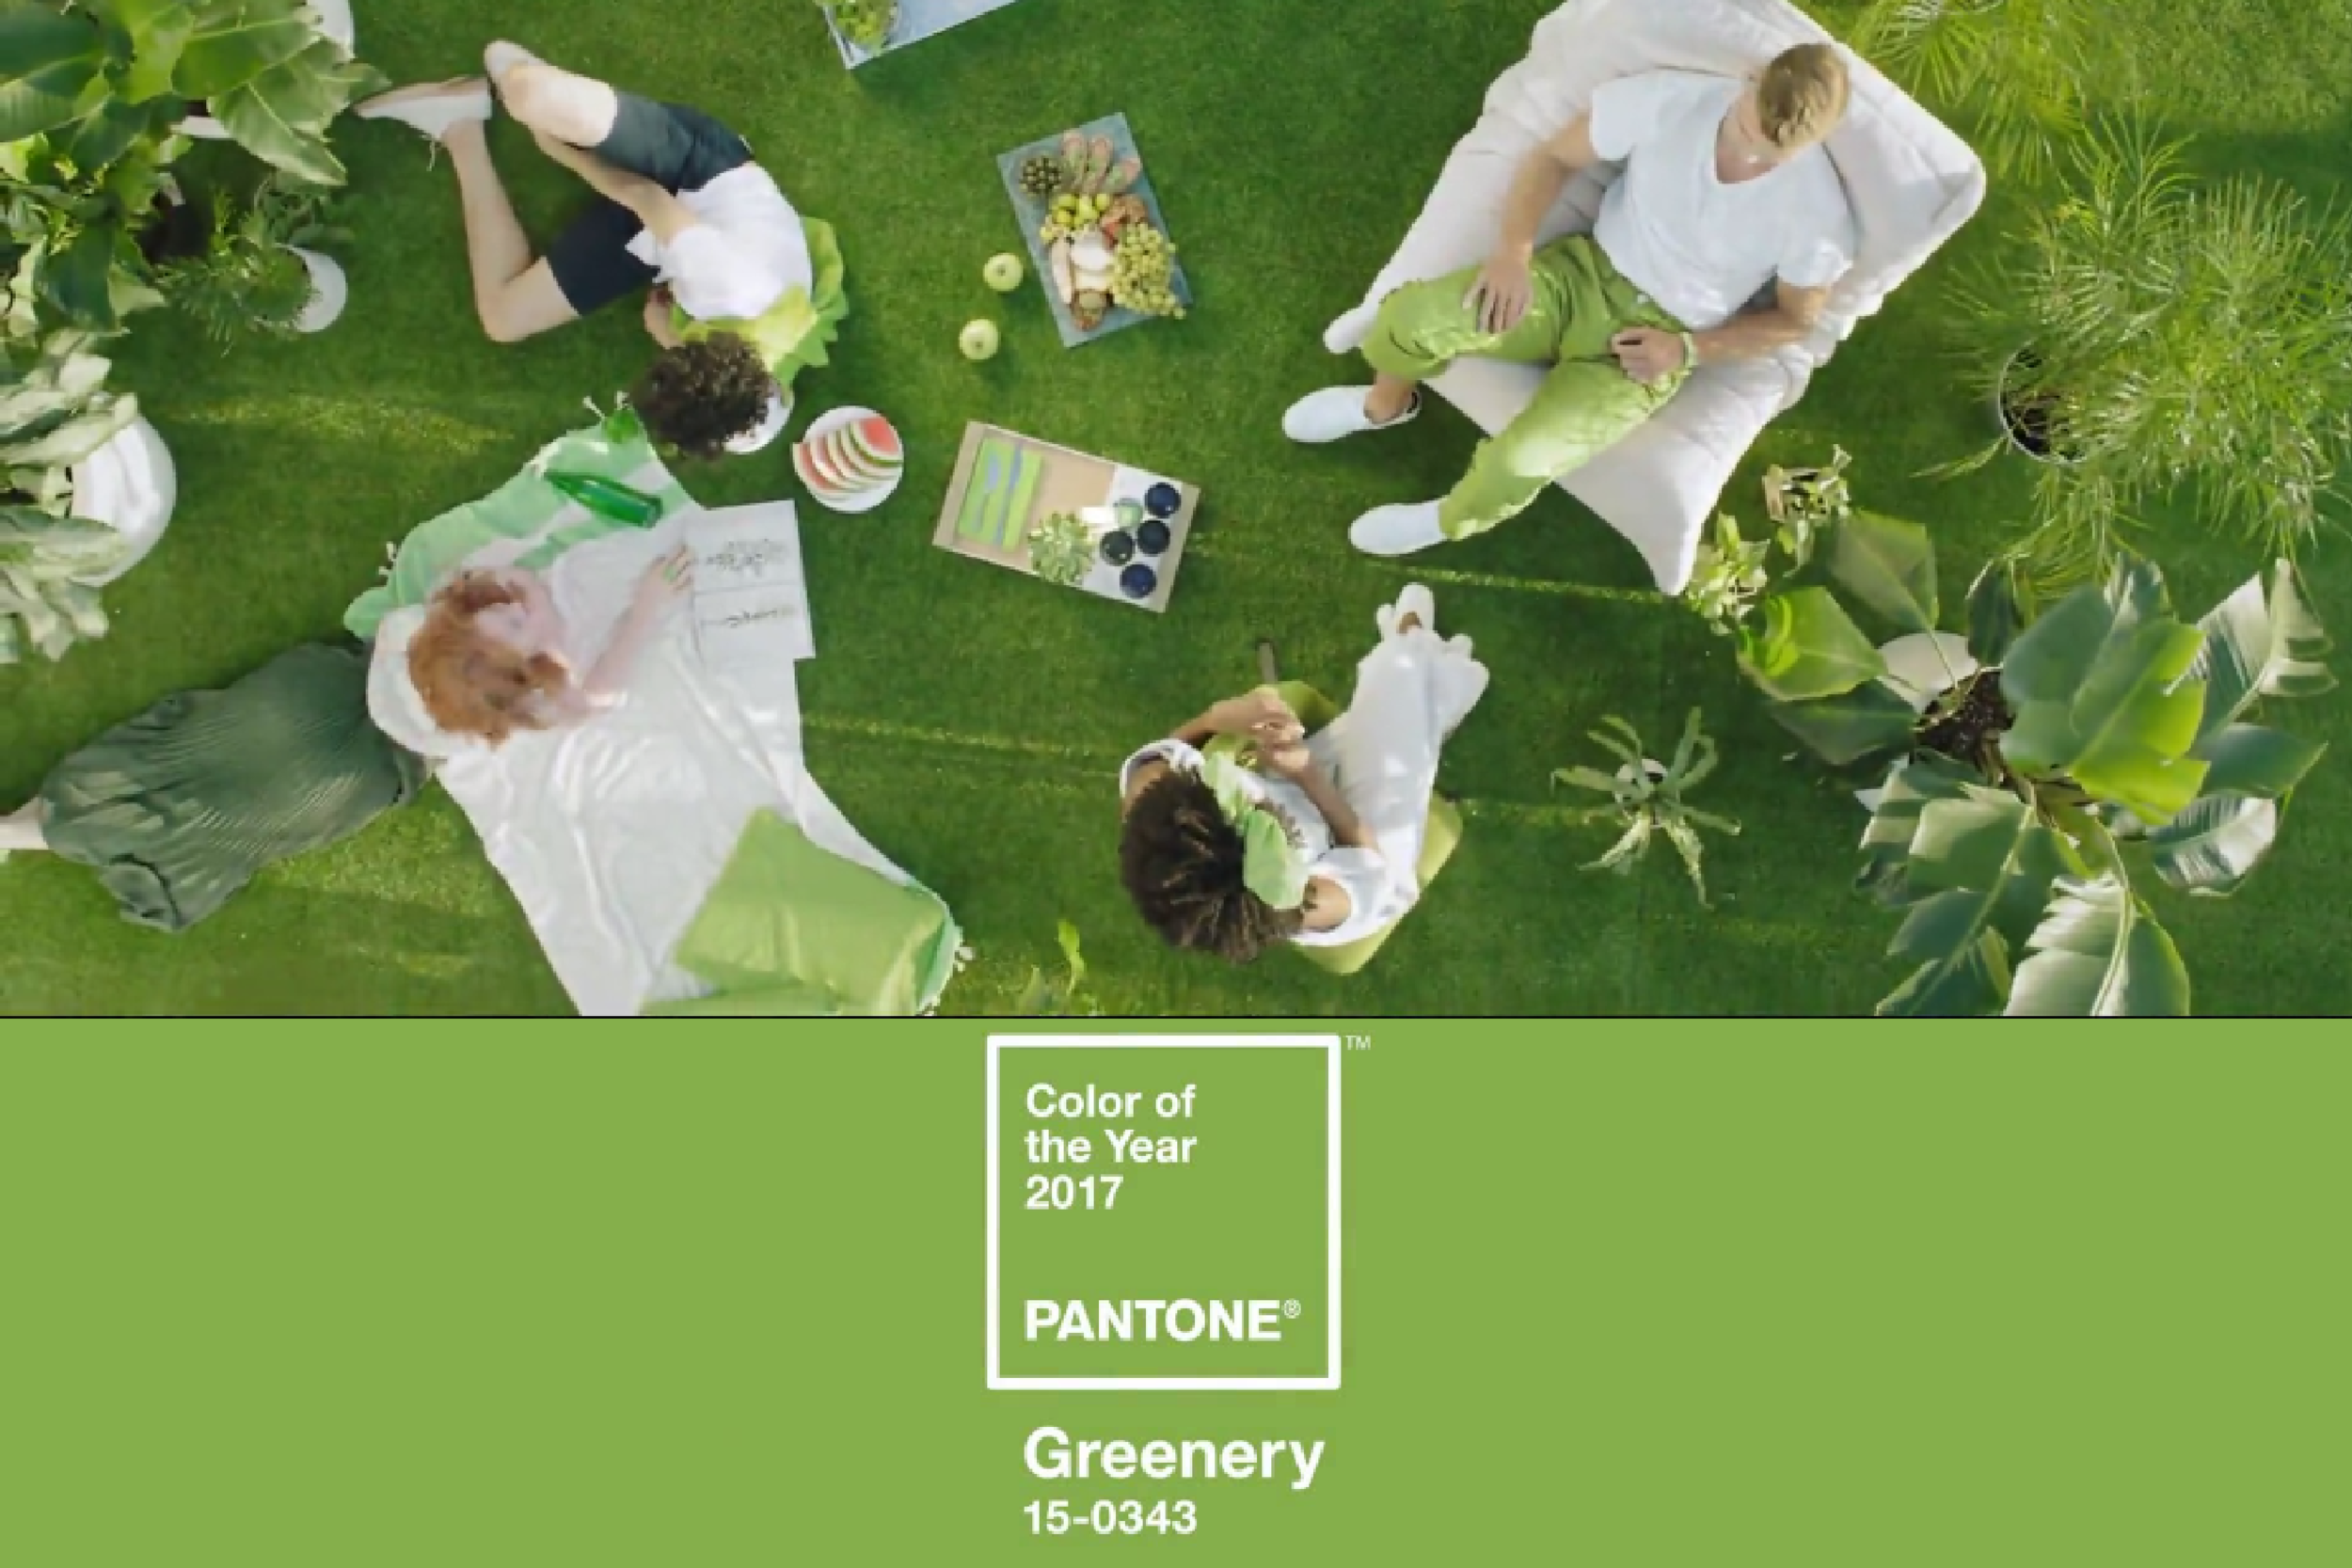 Greenery- Pantone color of the year 2017